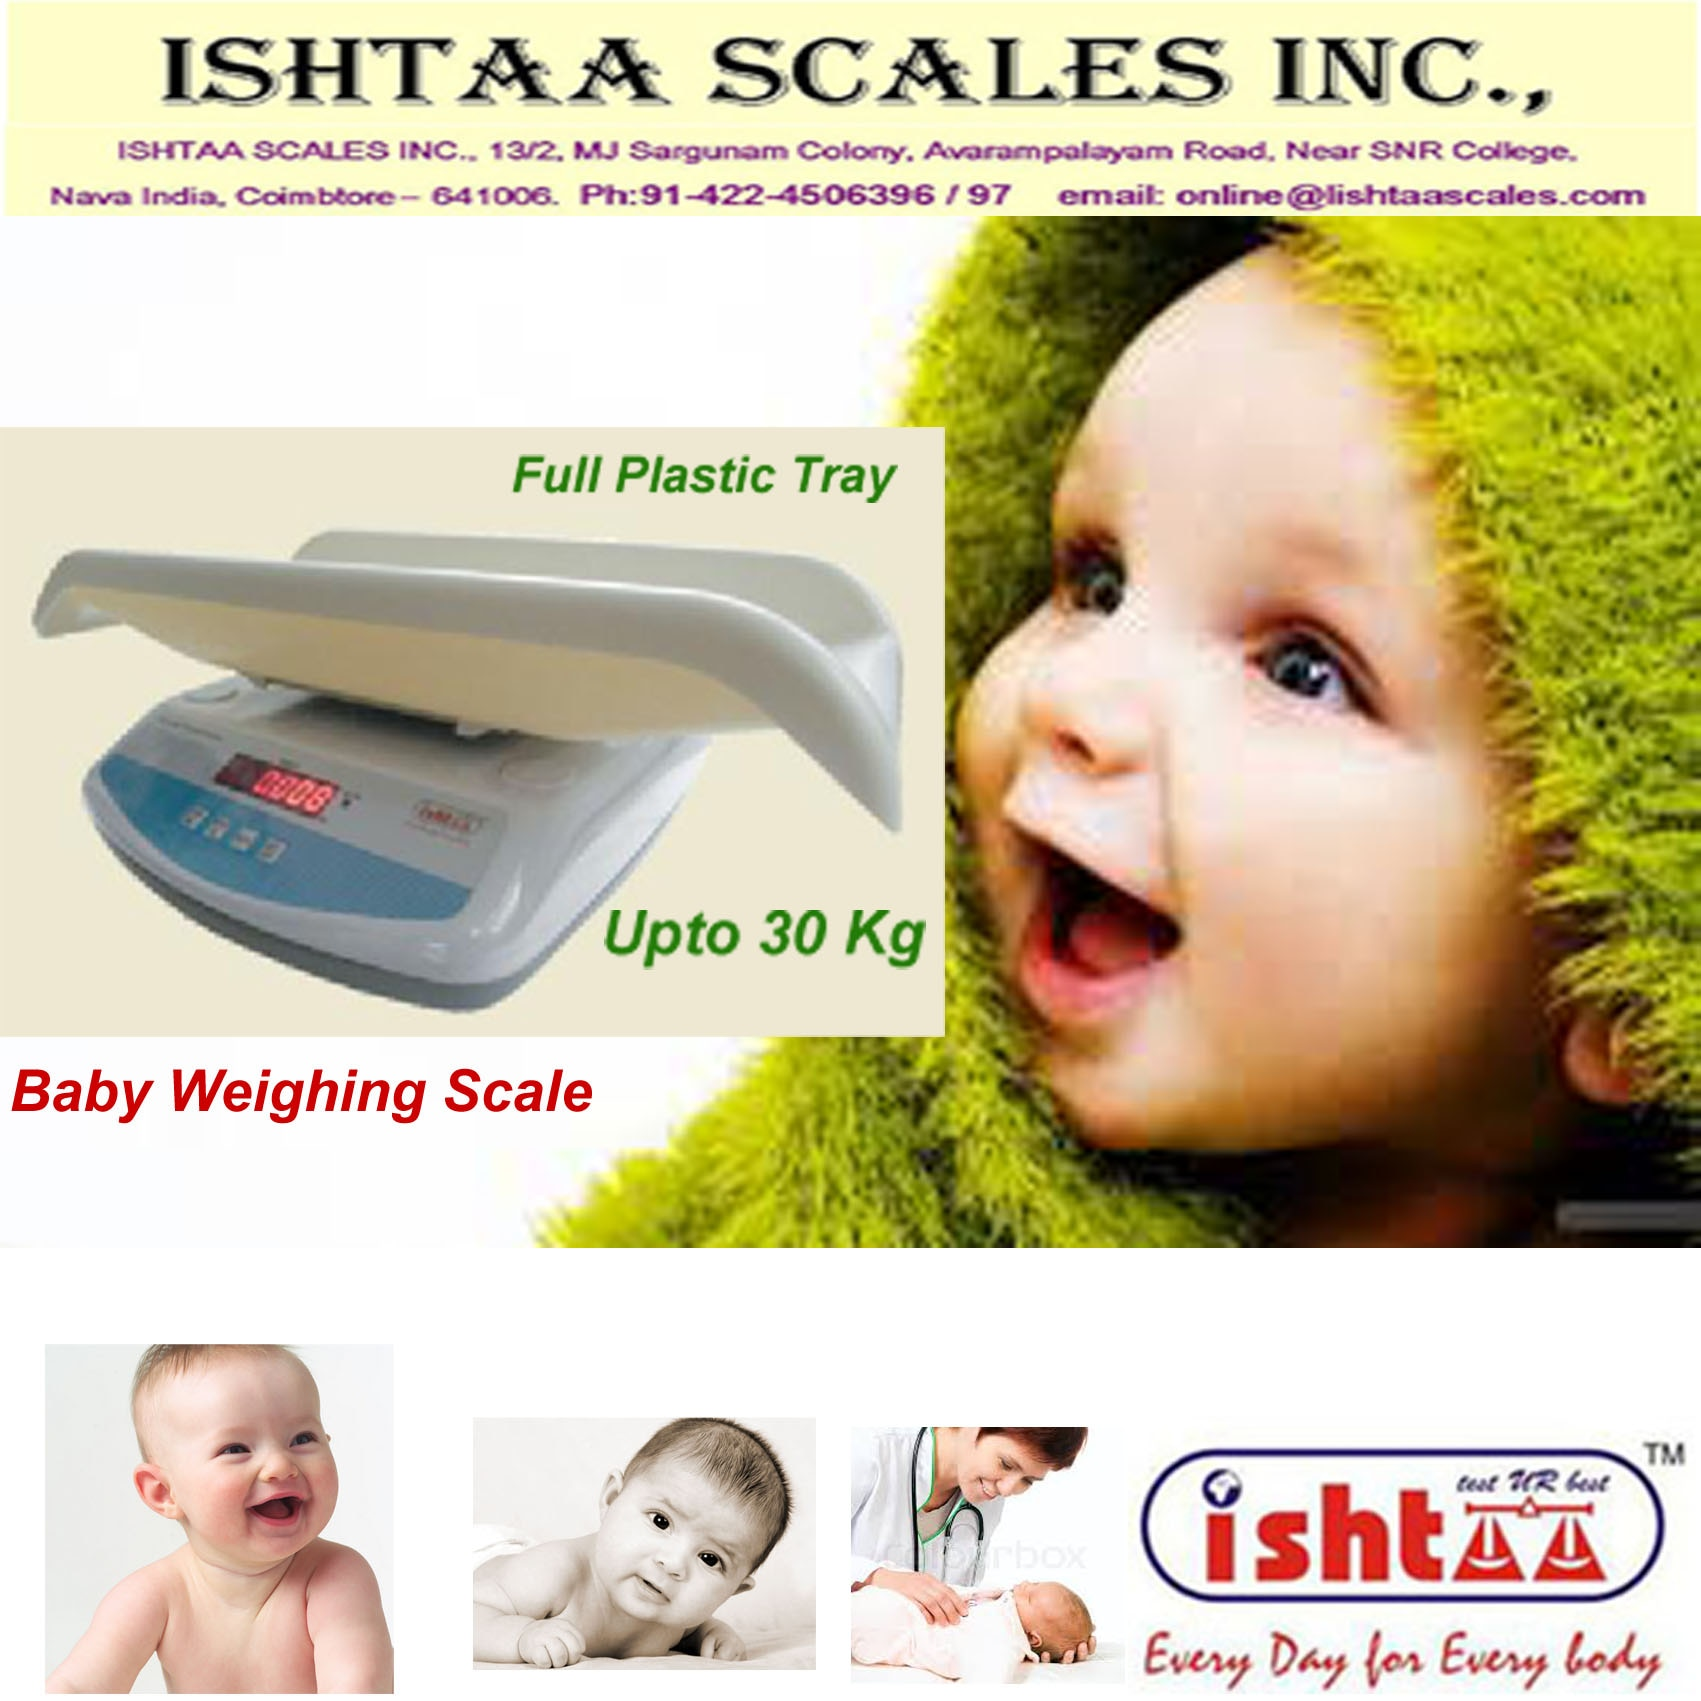 ISHTAA – Baby Weighing Scale 	 #BabyWeighing #HospitalWeighing #PediatricWeighing #NewbornWeighing #InfantWeighing #Babyweight #Kidsweighing #Clinicweighing #BabyPatient weighing #Childweighing #IshtaaWeighing #Scales #AccurateWeighing #AccurateScale #Weighing  Check in http : https://goo.gl/vwP7YR  Call : 098430 16028  Web: www.ishtaascales.com